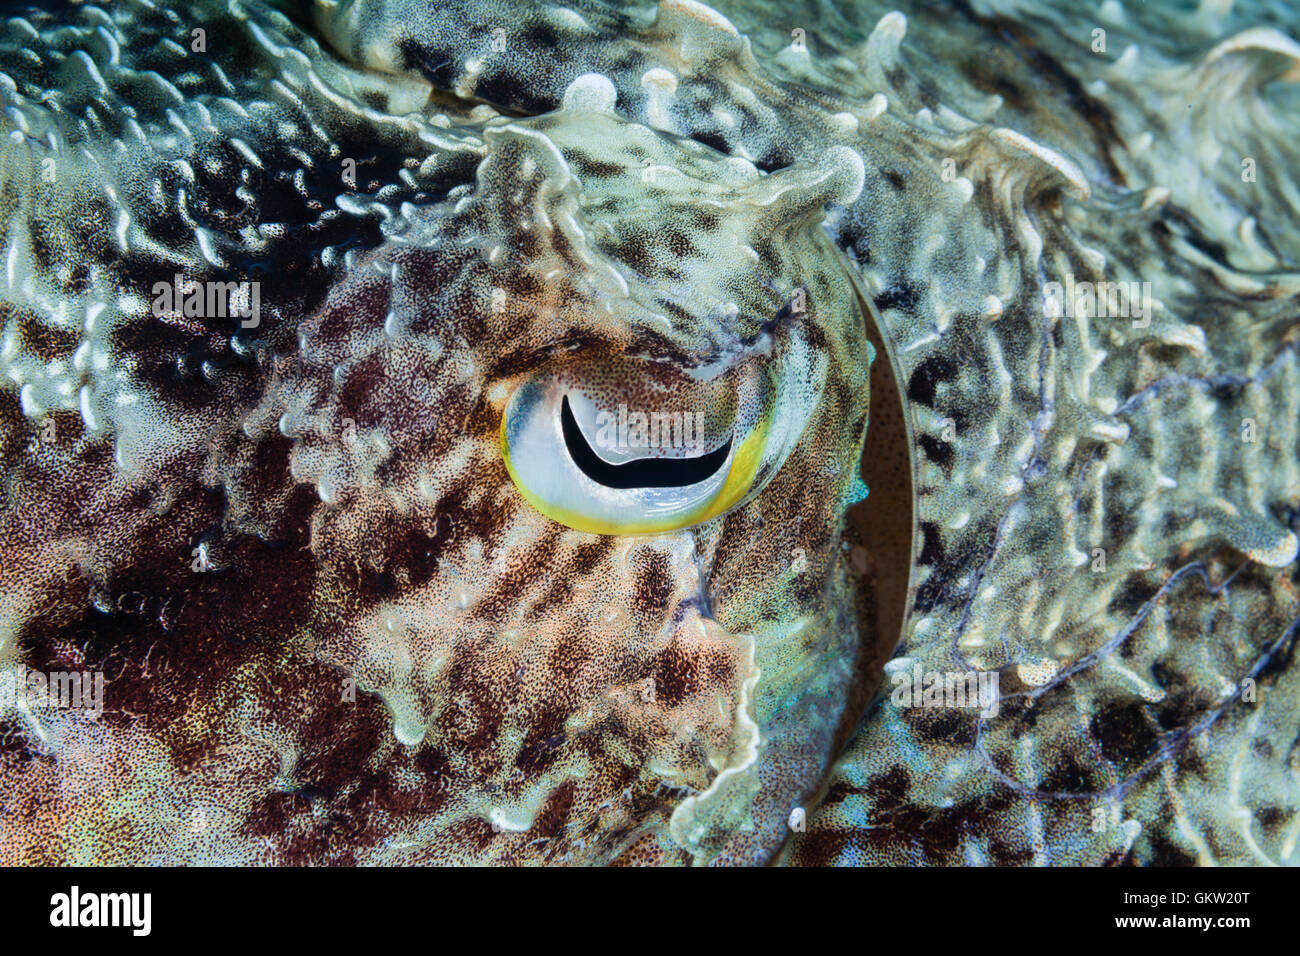 Eye of Cuttlefish, Sepia sp., Ambon, Moluccas, Indonesia - Stock Image